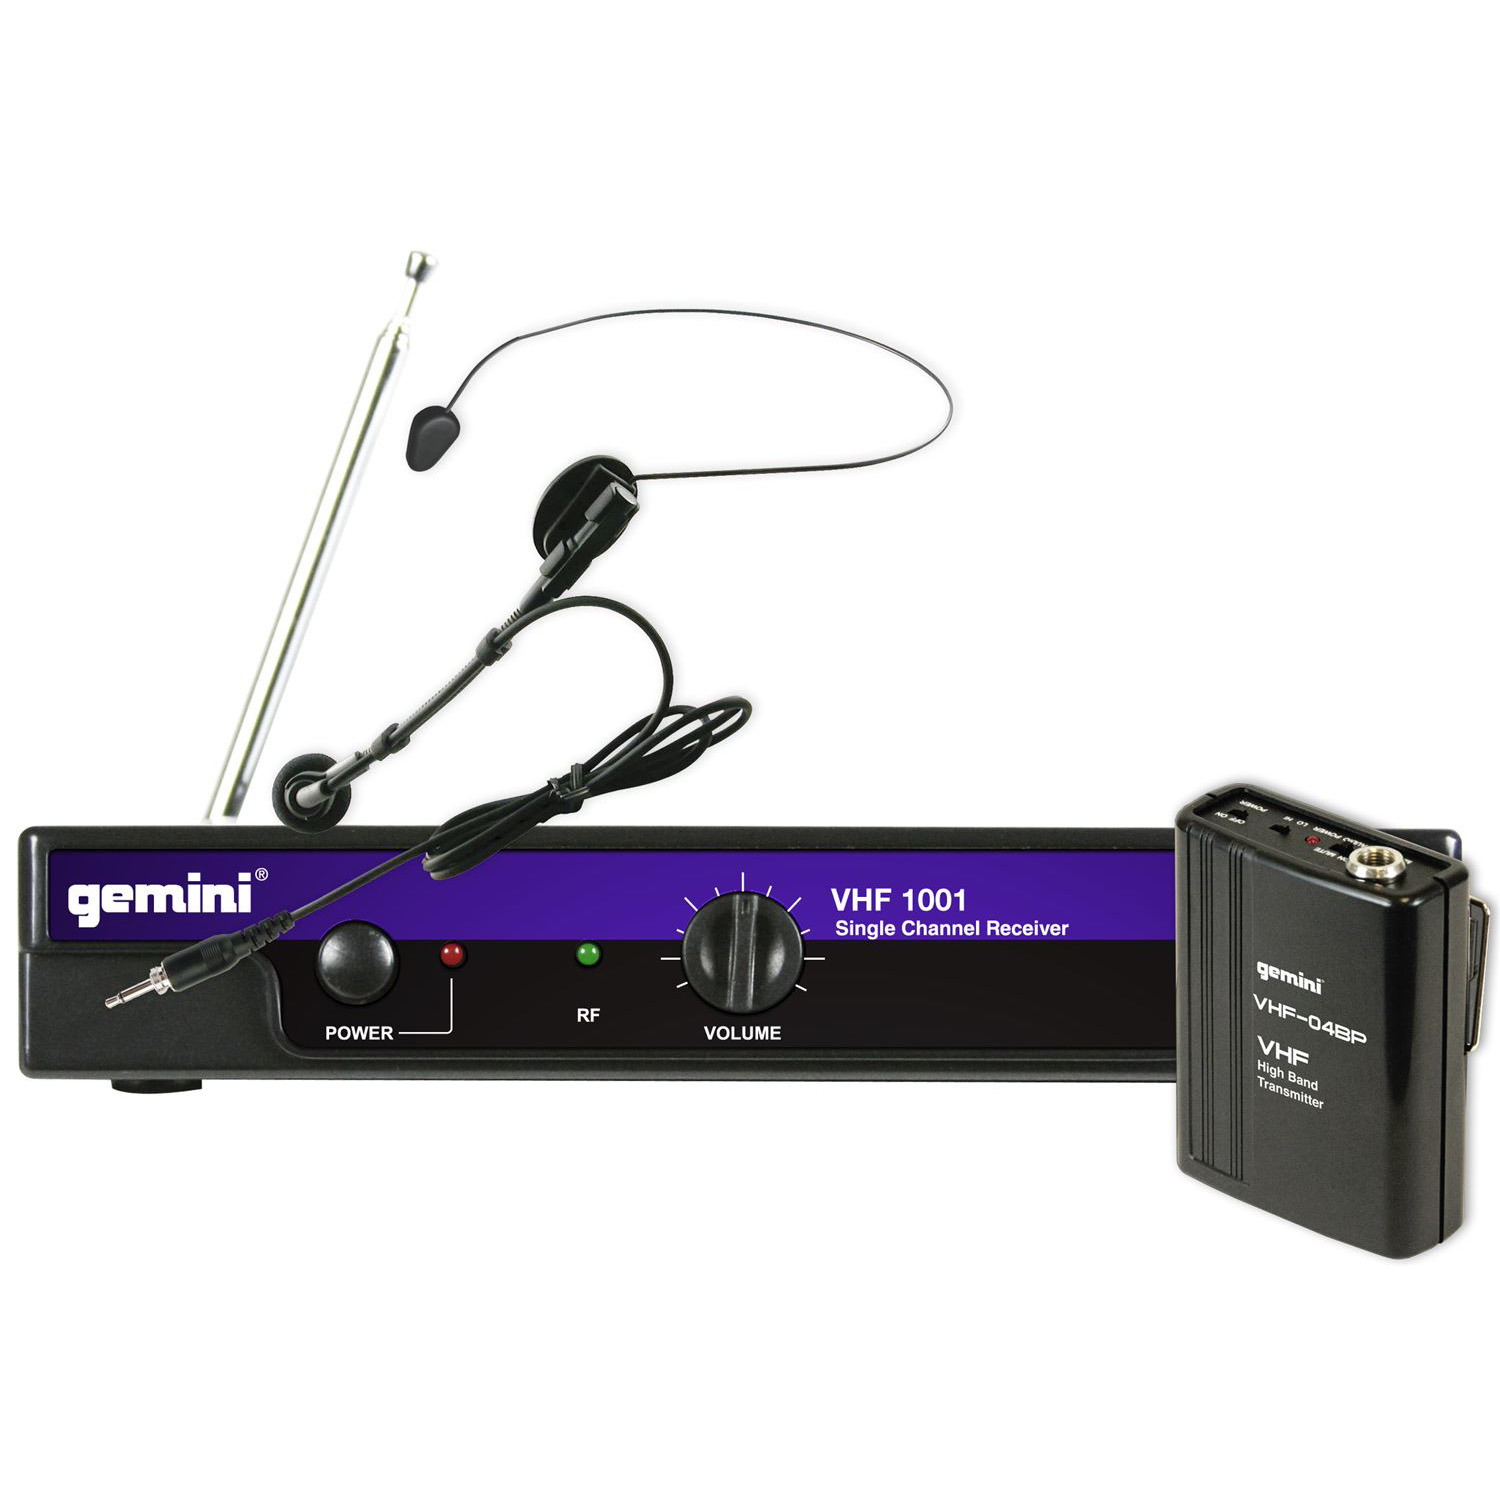 Upc 747705205650 Gemini Dj Vhf 1001hl C4 Wireless